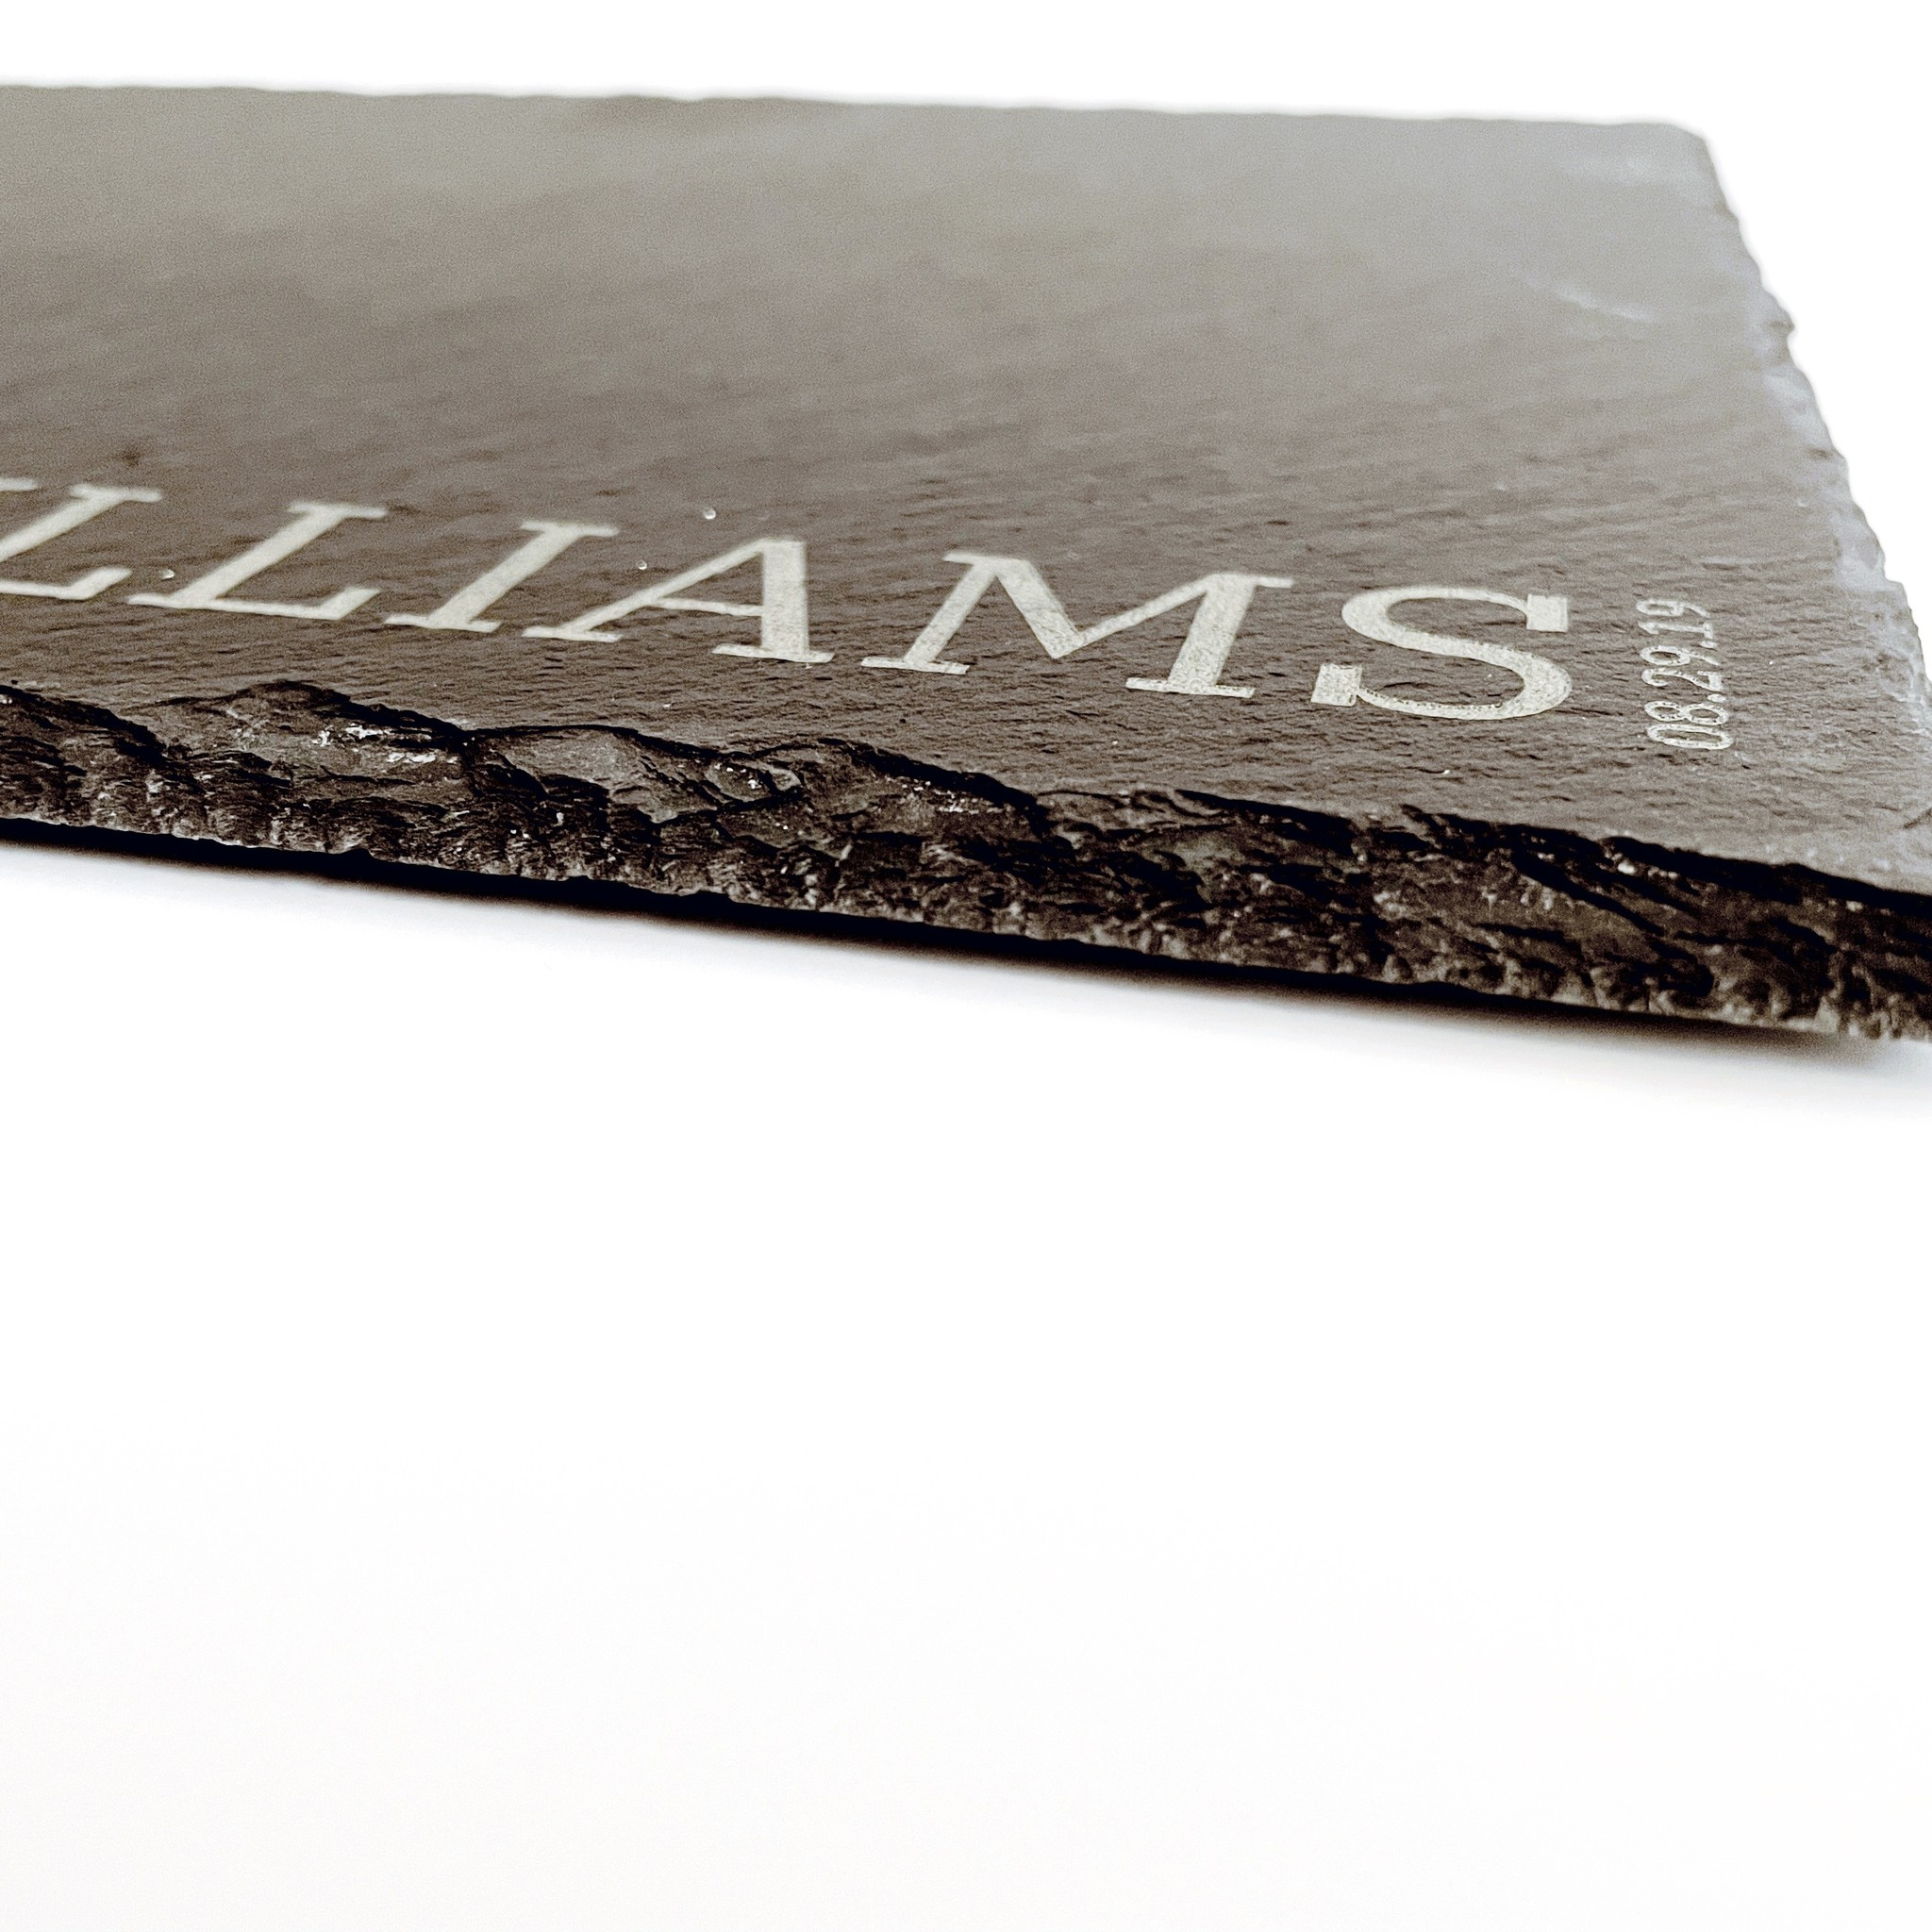 P Graham Dunn Personalized Slate Cheese Board